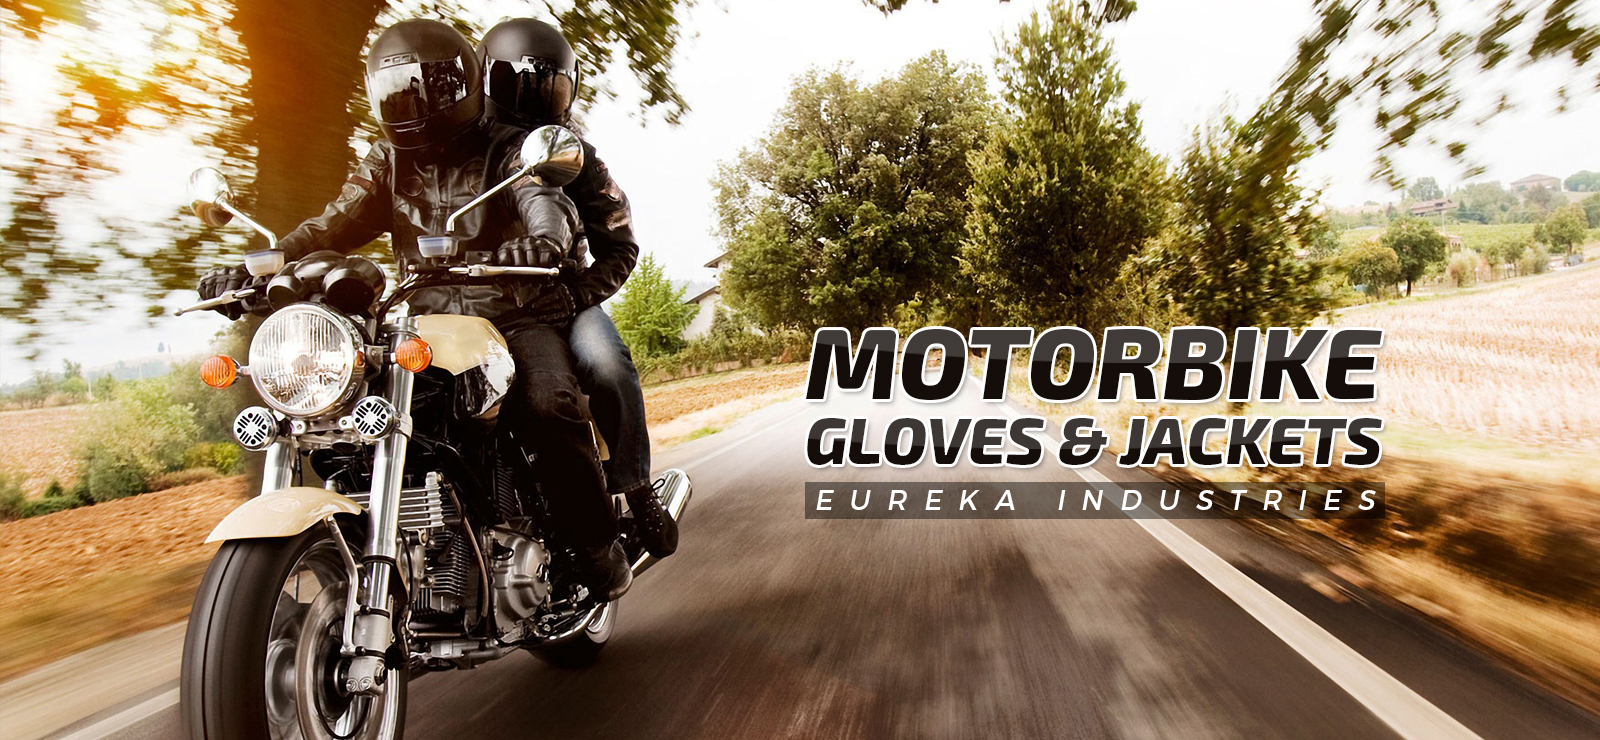 Motorbike Gloves and Jackets-2